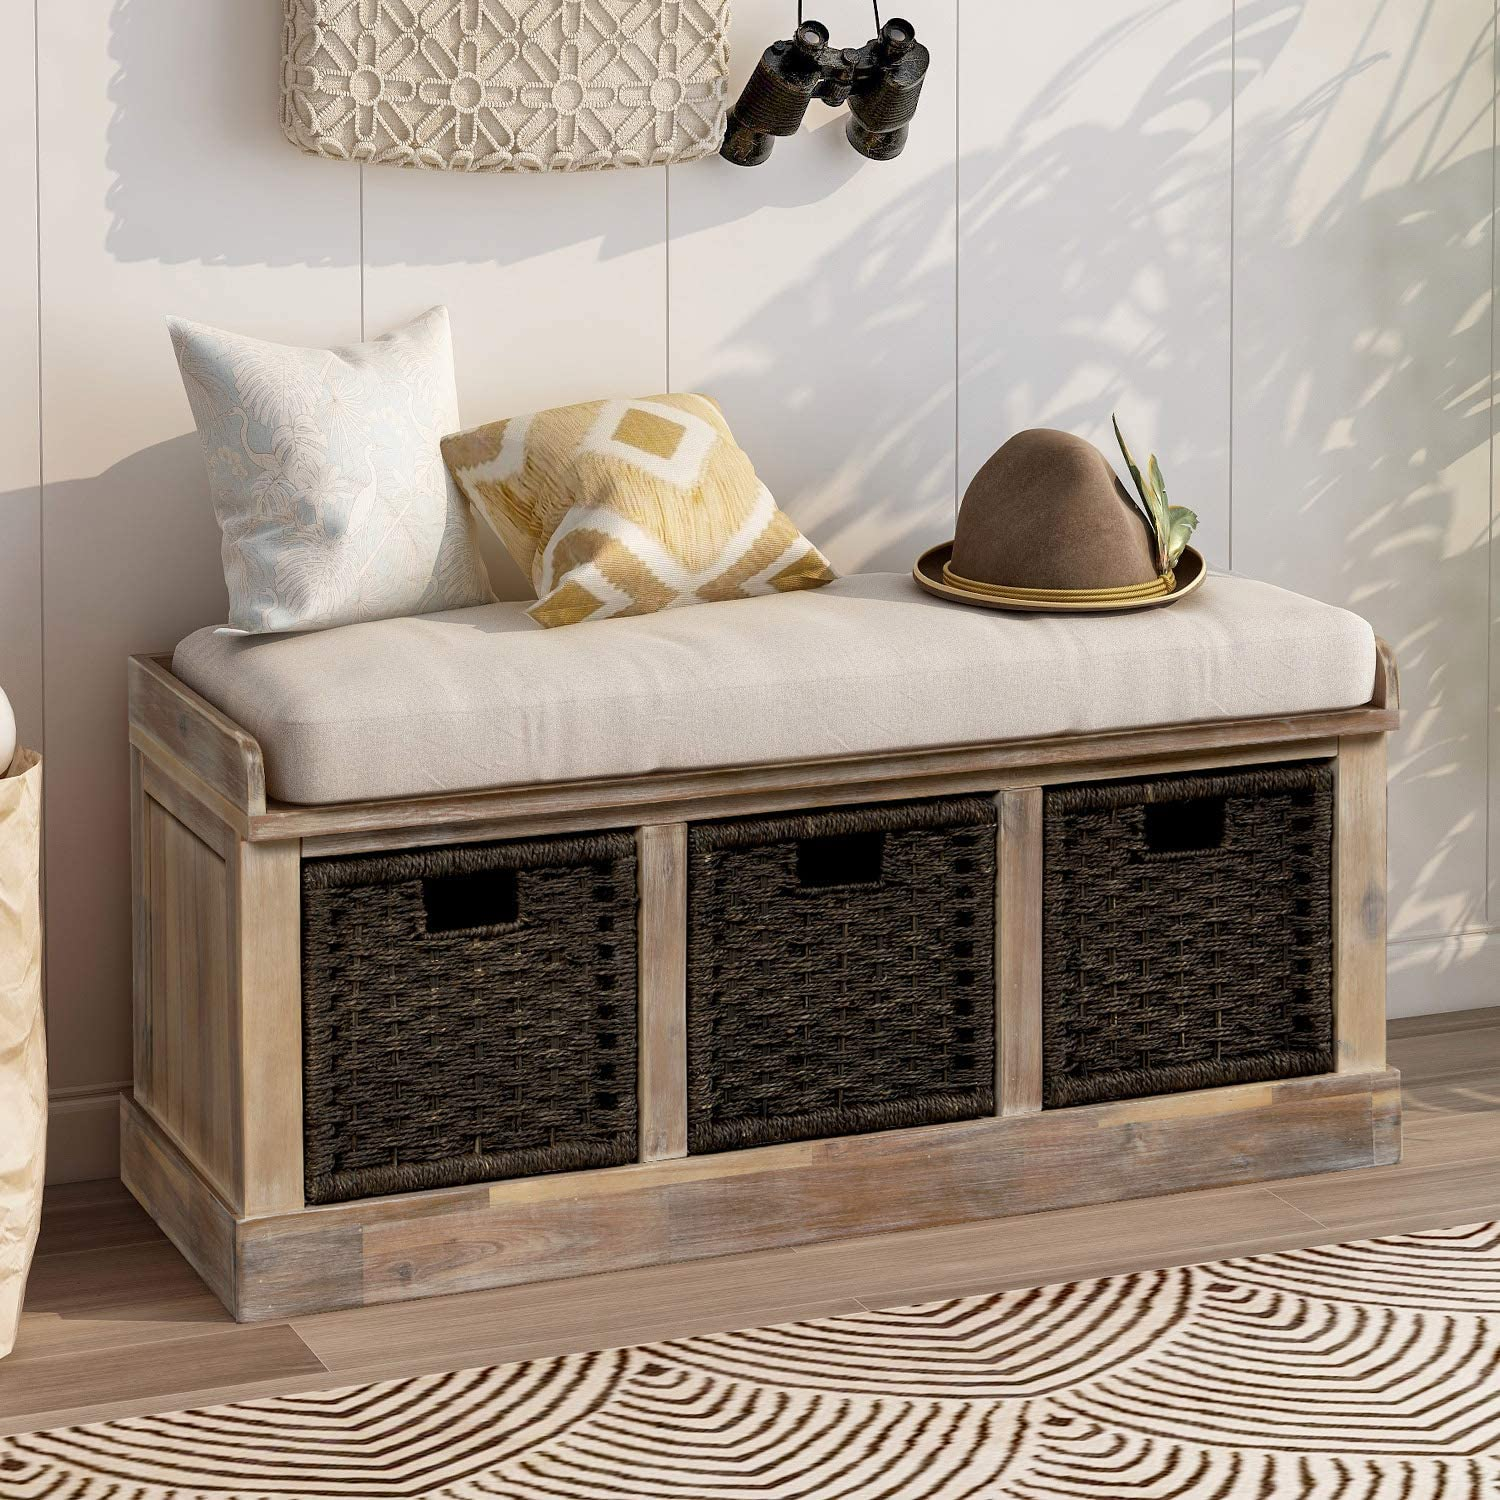 Storage Bench Wicker Storage Bench with 3 Woven Baskets and Removable Cushion, Wood Entryway Shoe Bench for Hallway, Entryway, Bedroom and Living Room, White Washed